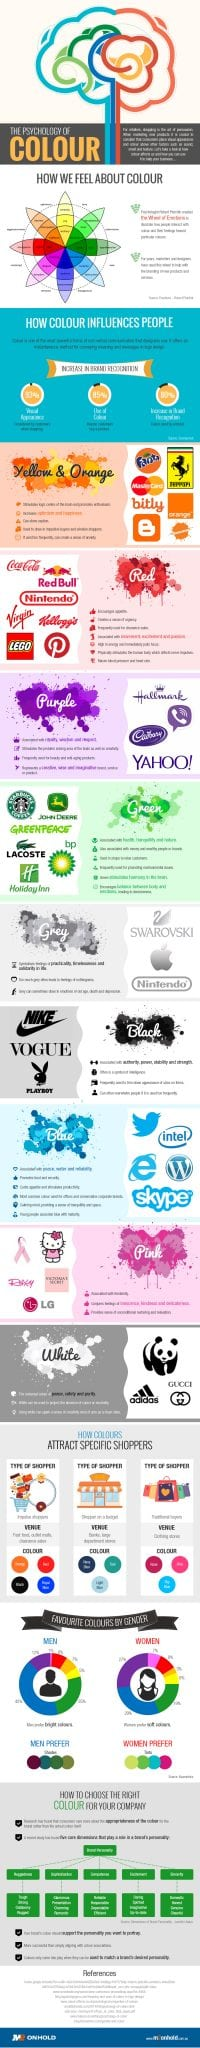 The Psychology of Color [INFOGRAPHIC] - Teach a CEO